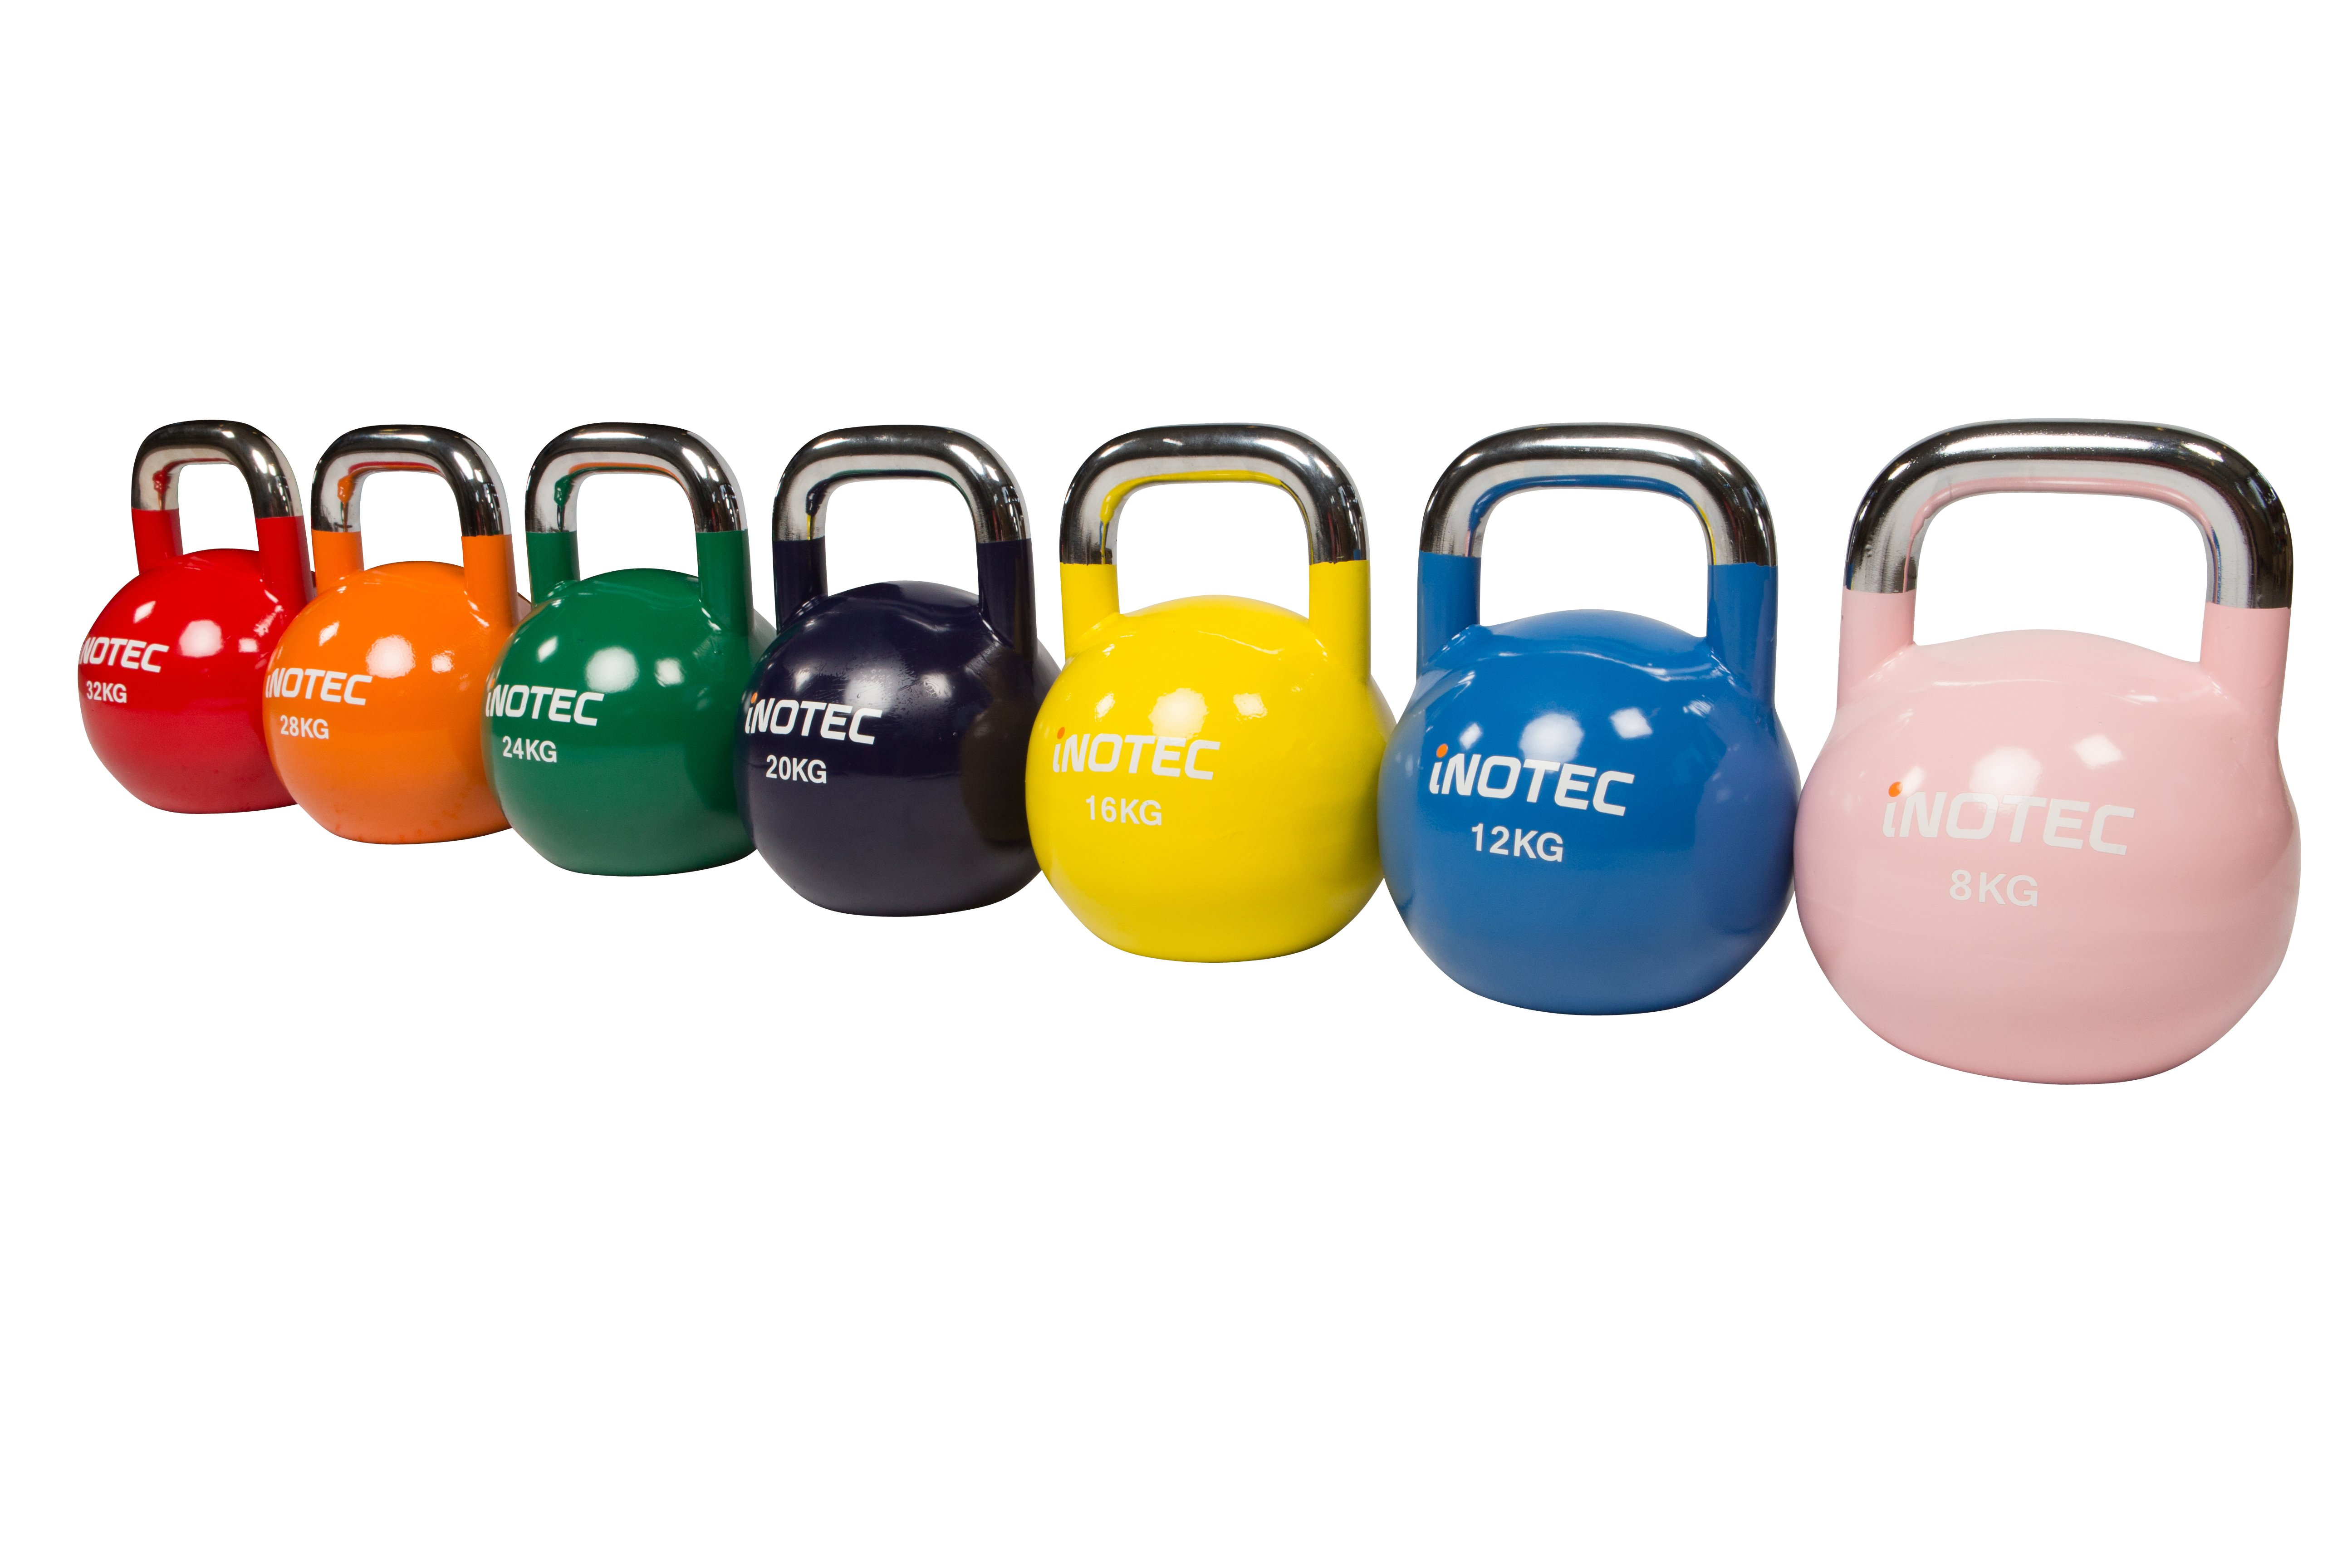 Inotec Competition Kettlebell 36 kg